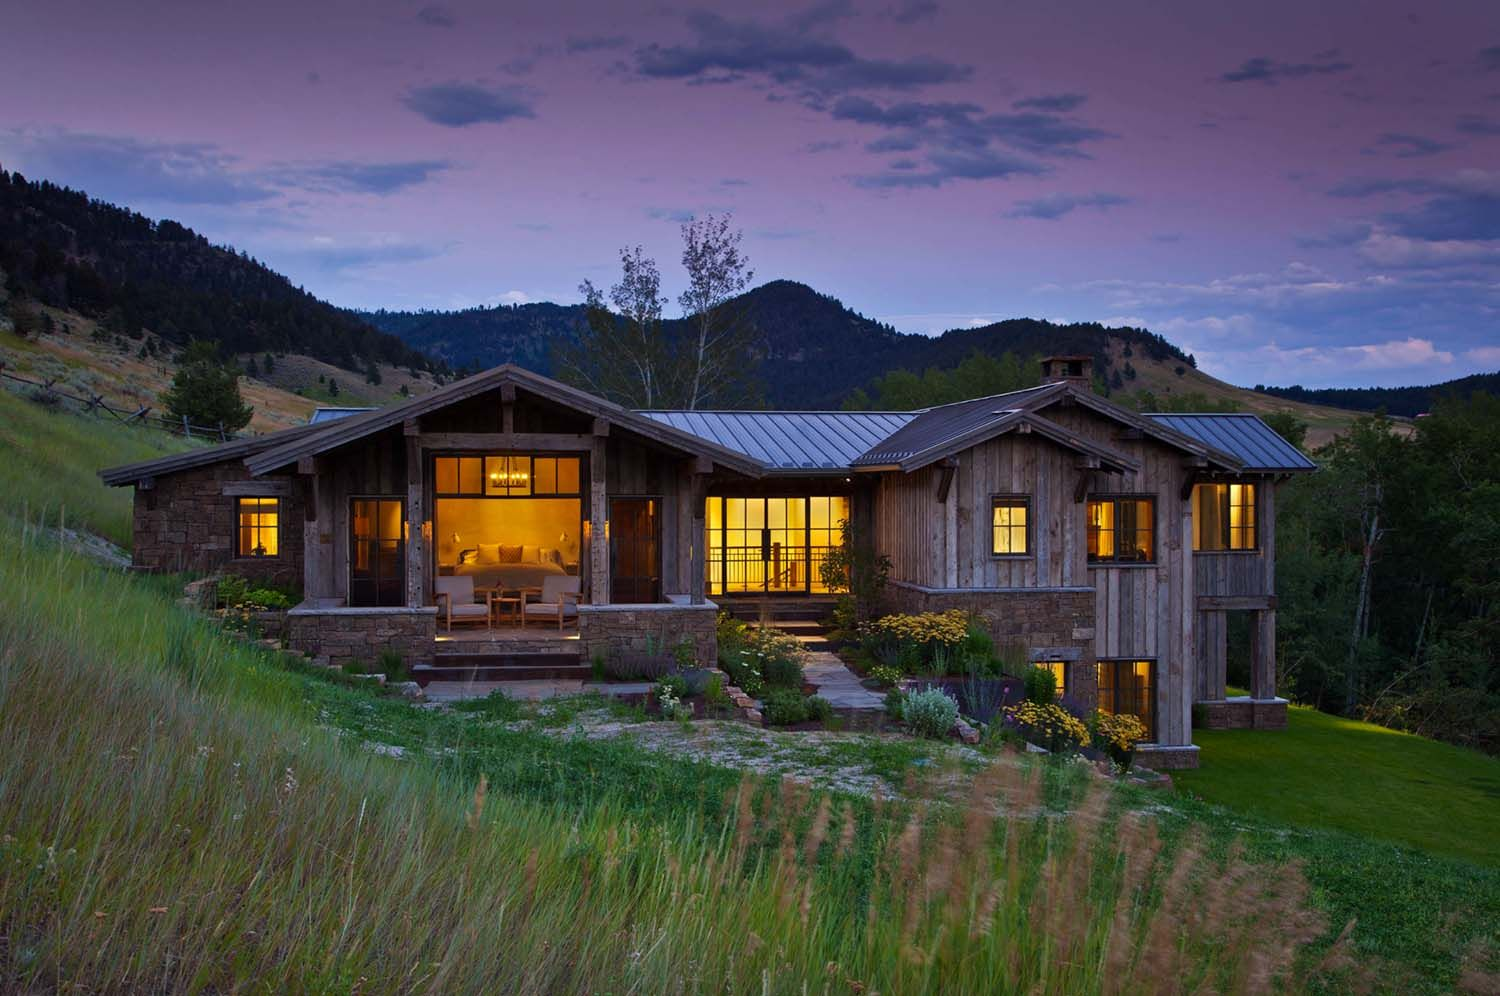 Rustic mountain retreat nestled in the Bridger Mountain foothills ...